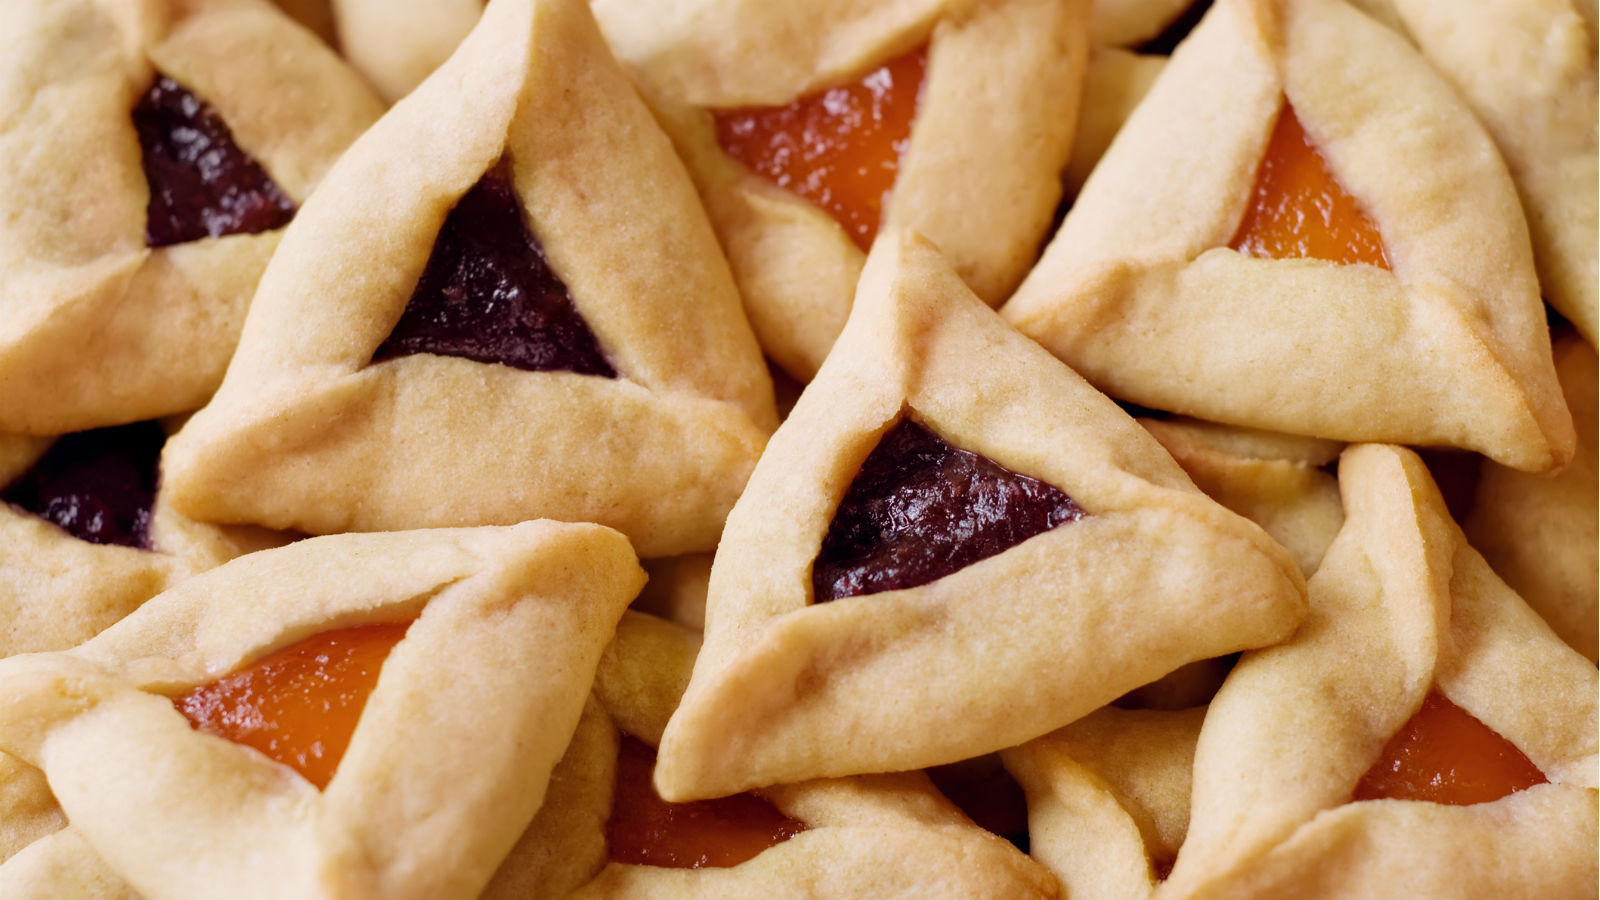 purim pastries filled with jelly